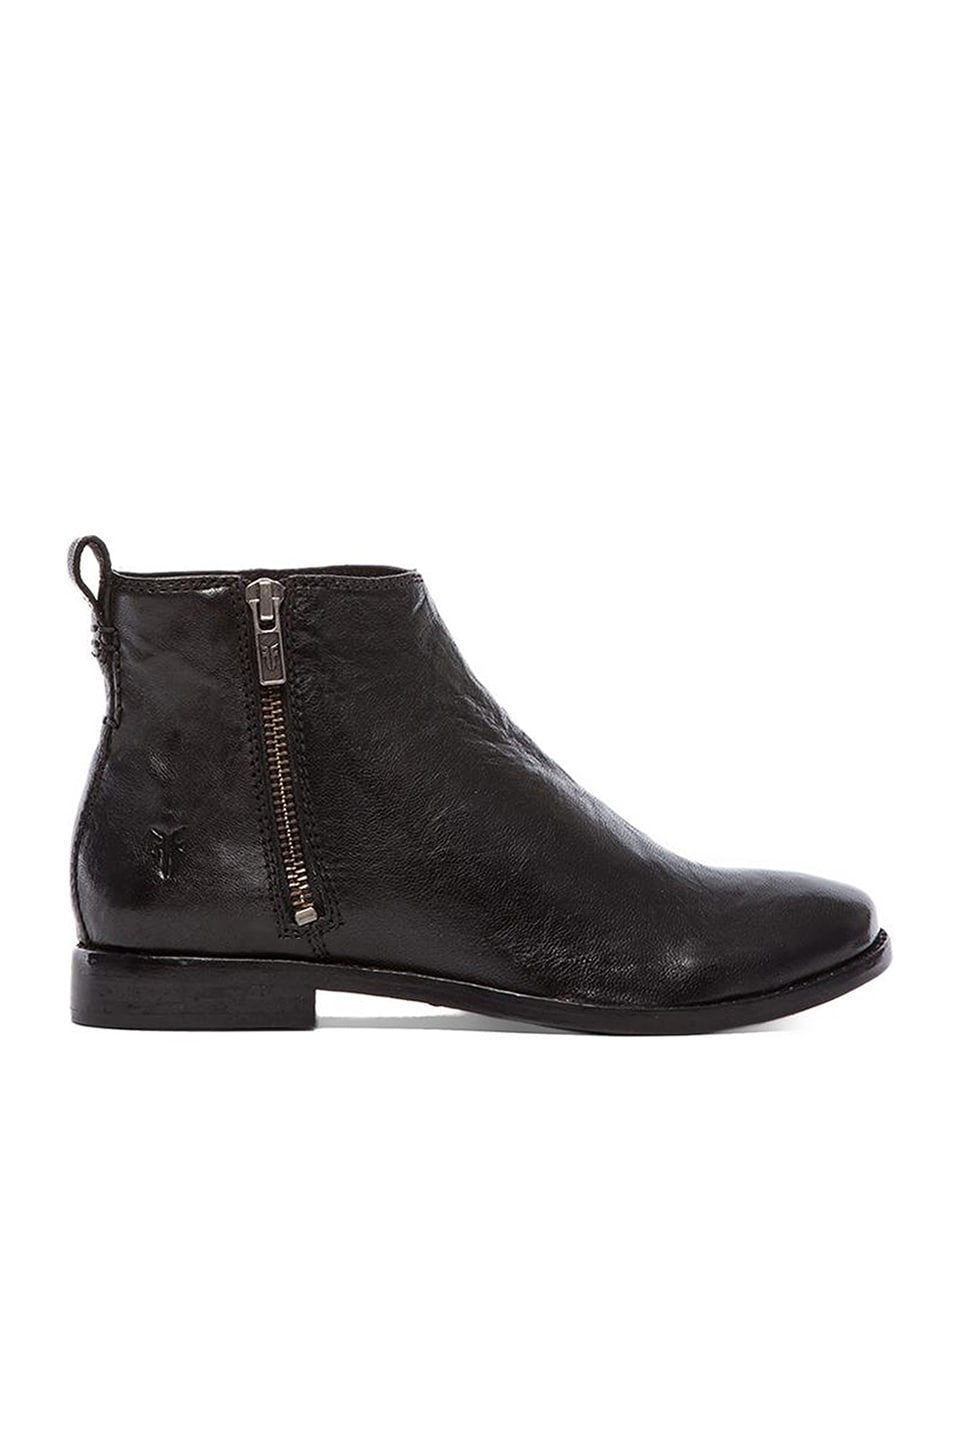 Frye Anna Outside Zip Shootie in Black